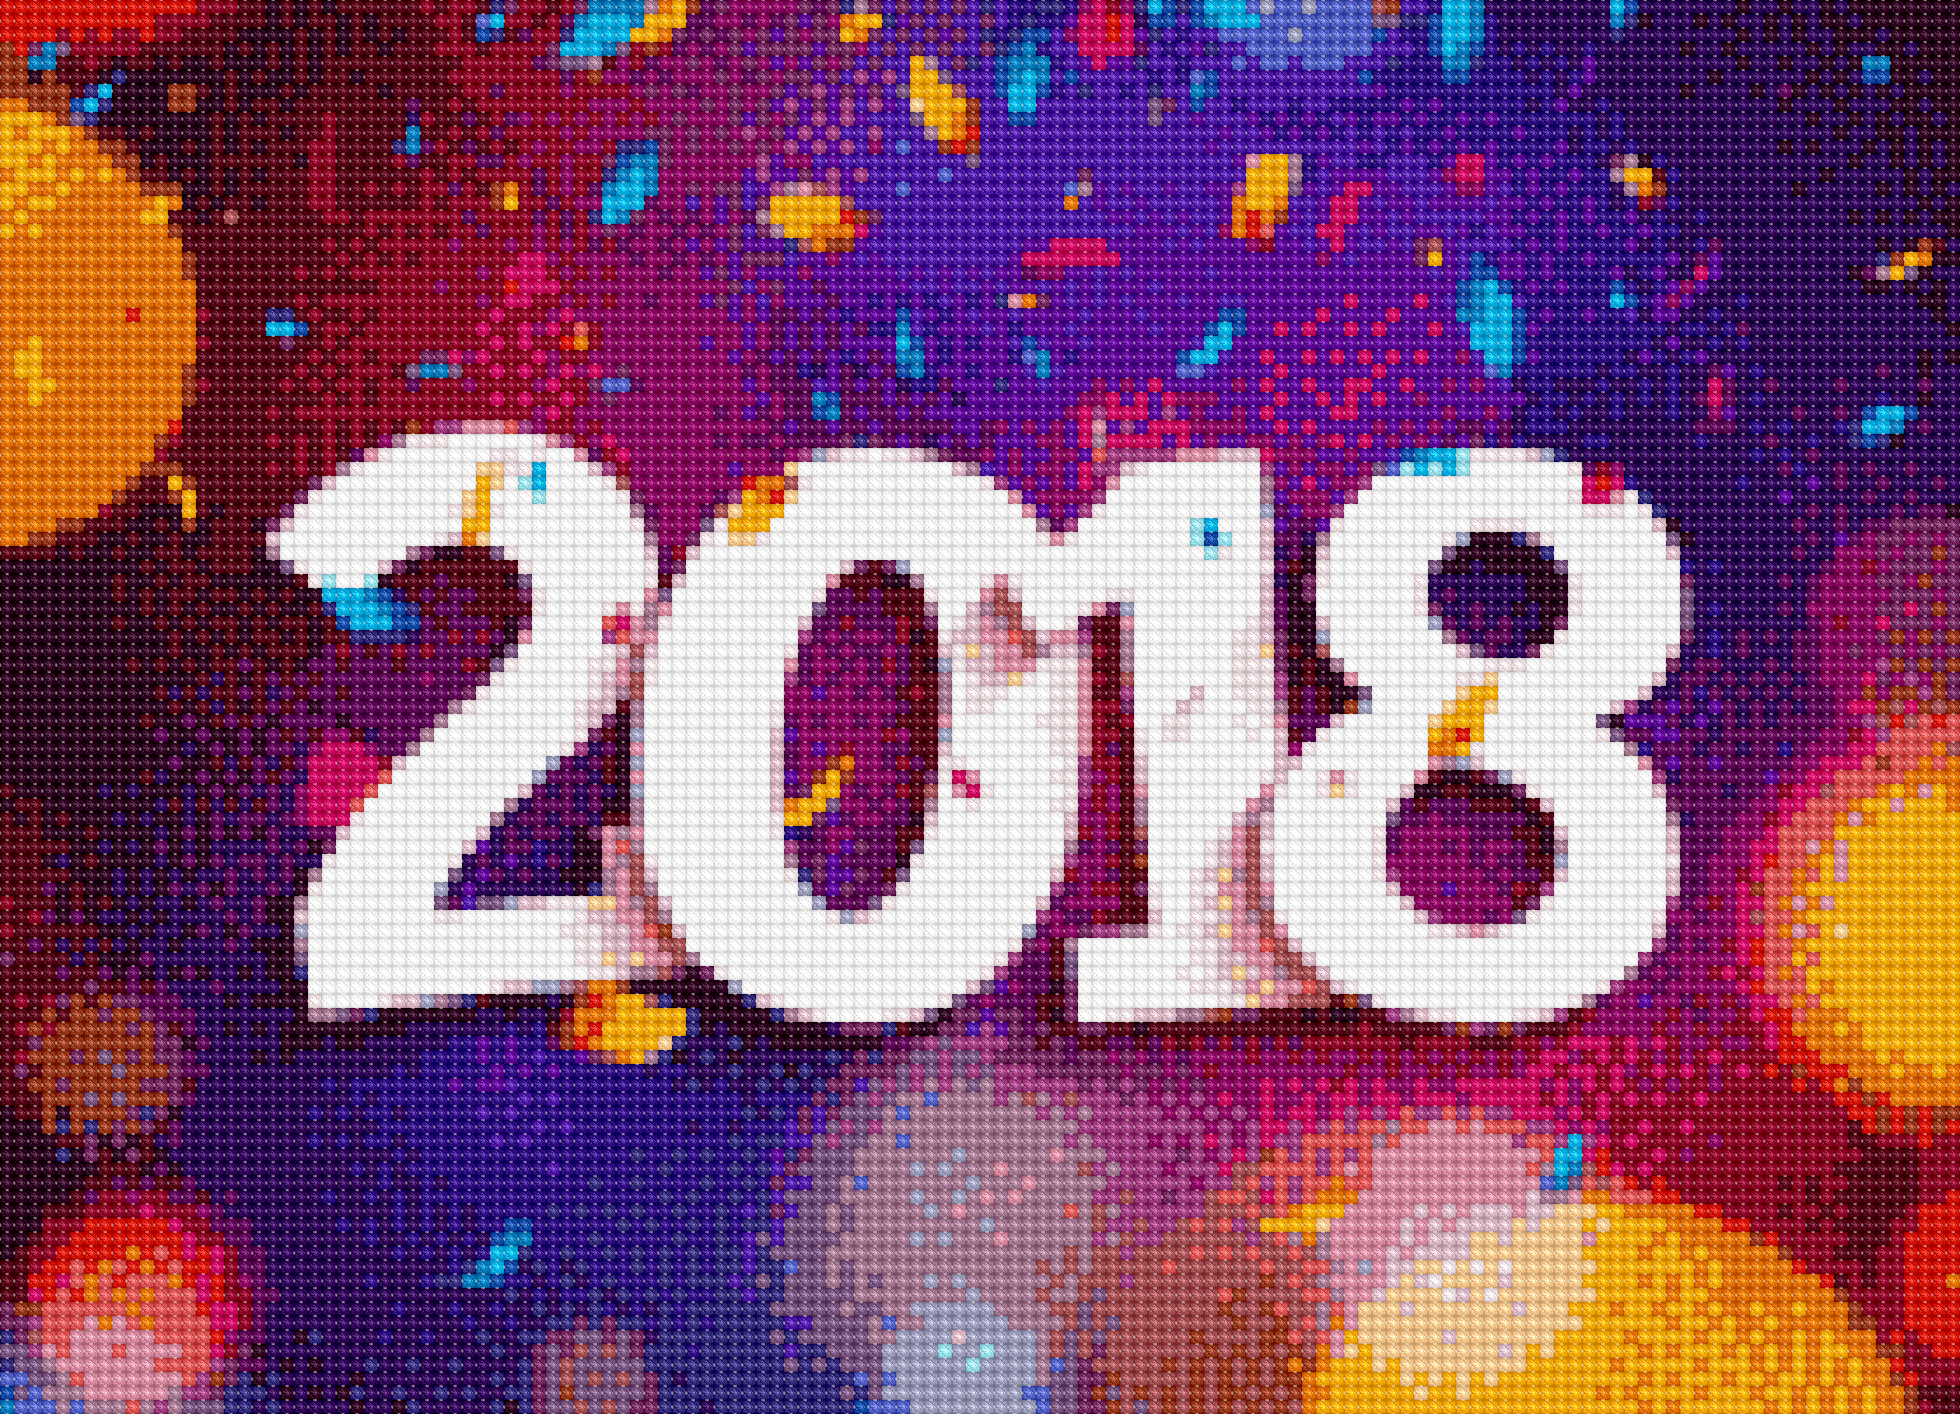 A virtual cross stitch pattern, mostly pink and purple with large white numbers saying 2018.